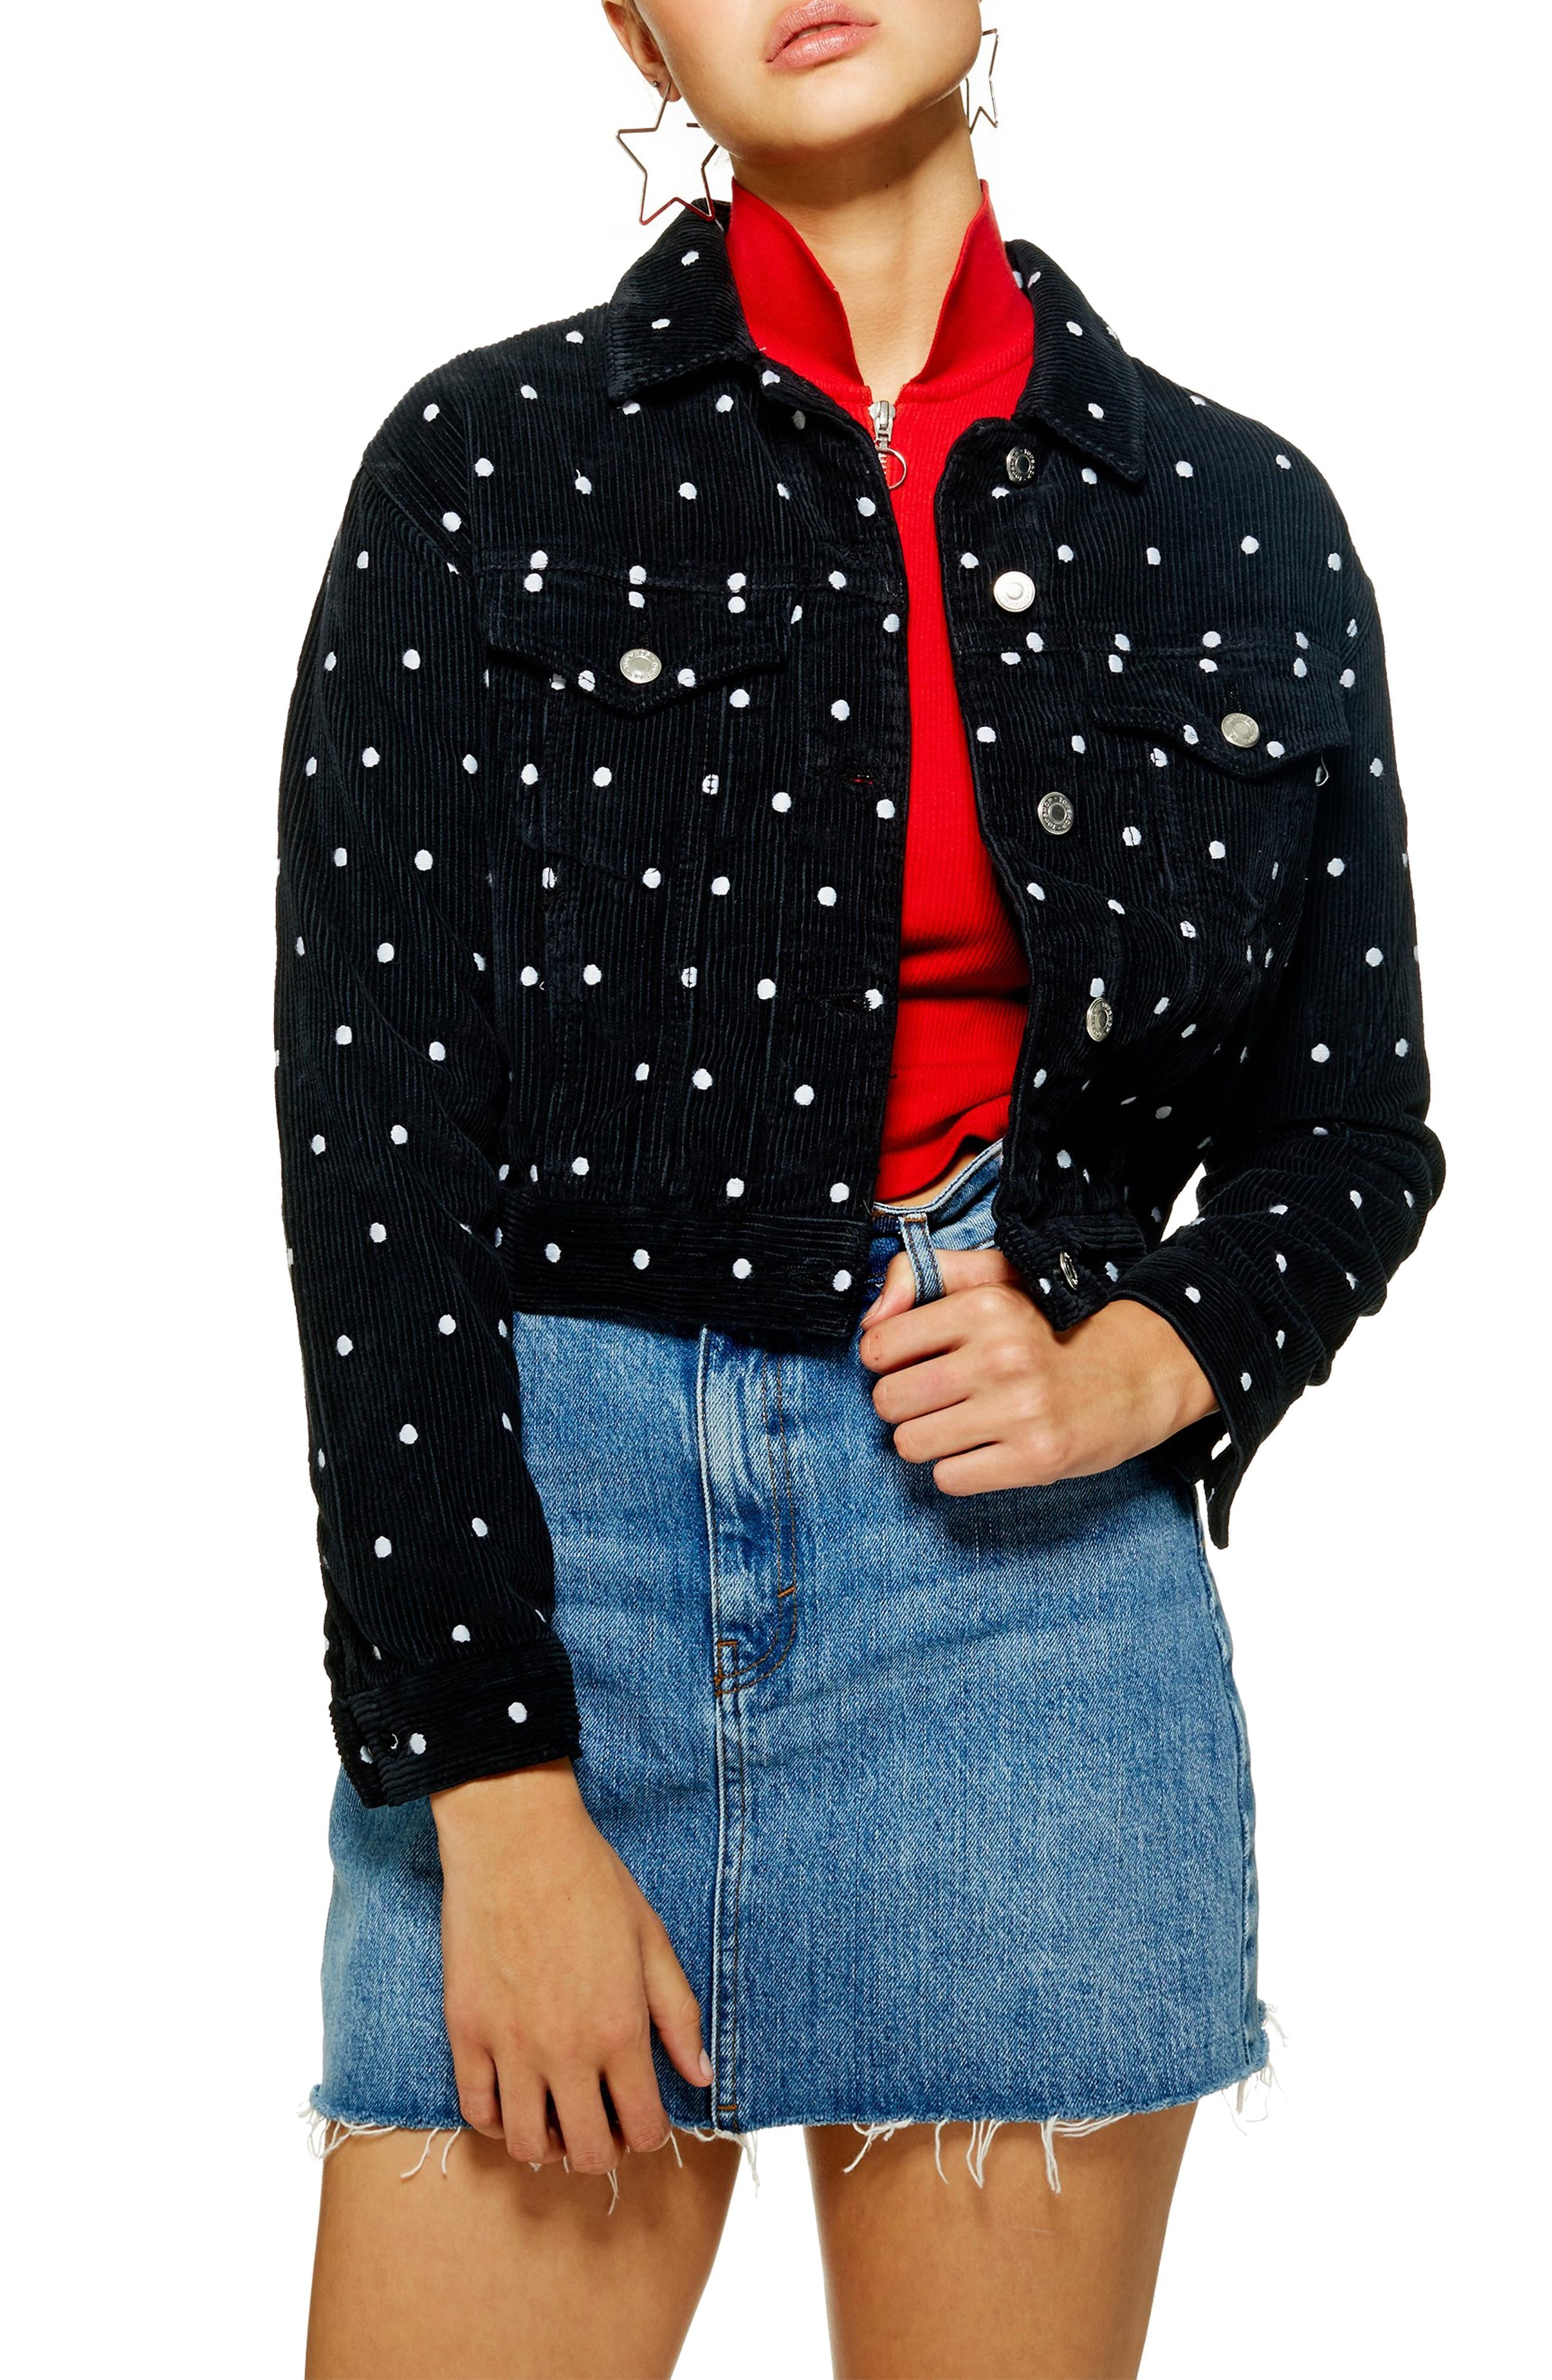 Spot Corduroy Jacket,                             Main thumbnail 1, color,                             NAVY BLUE